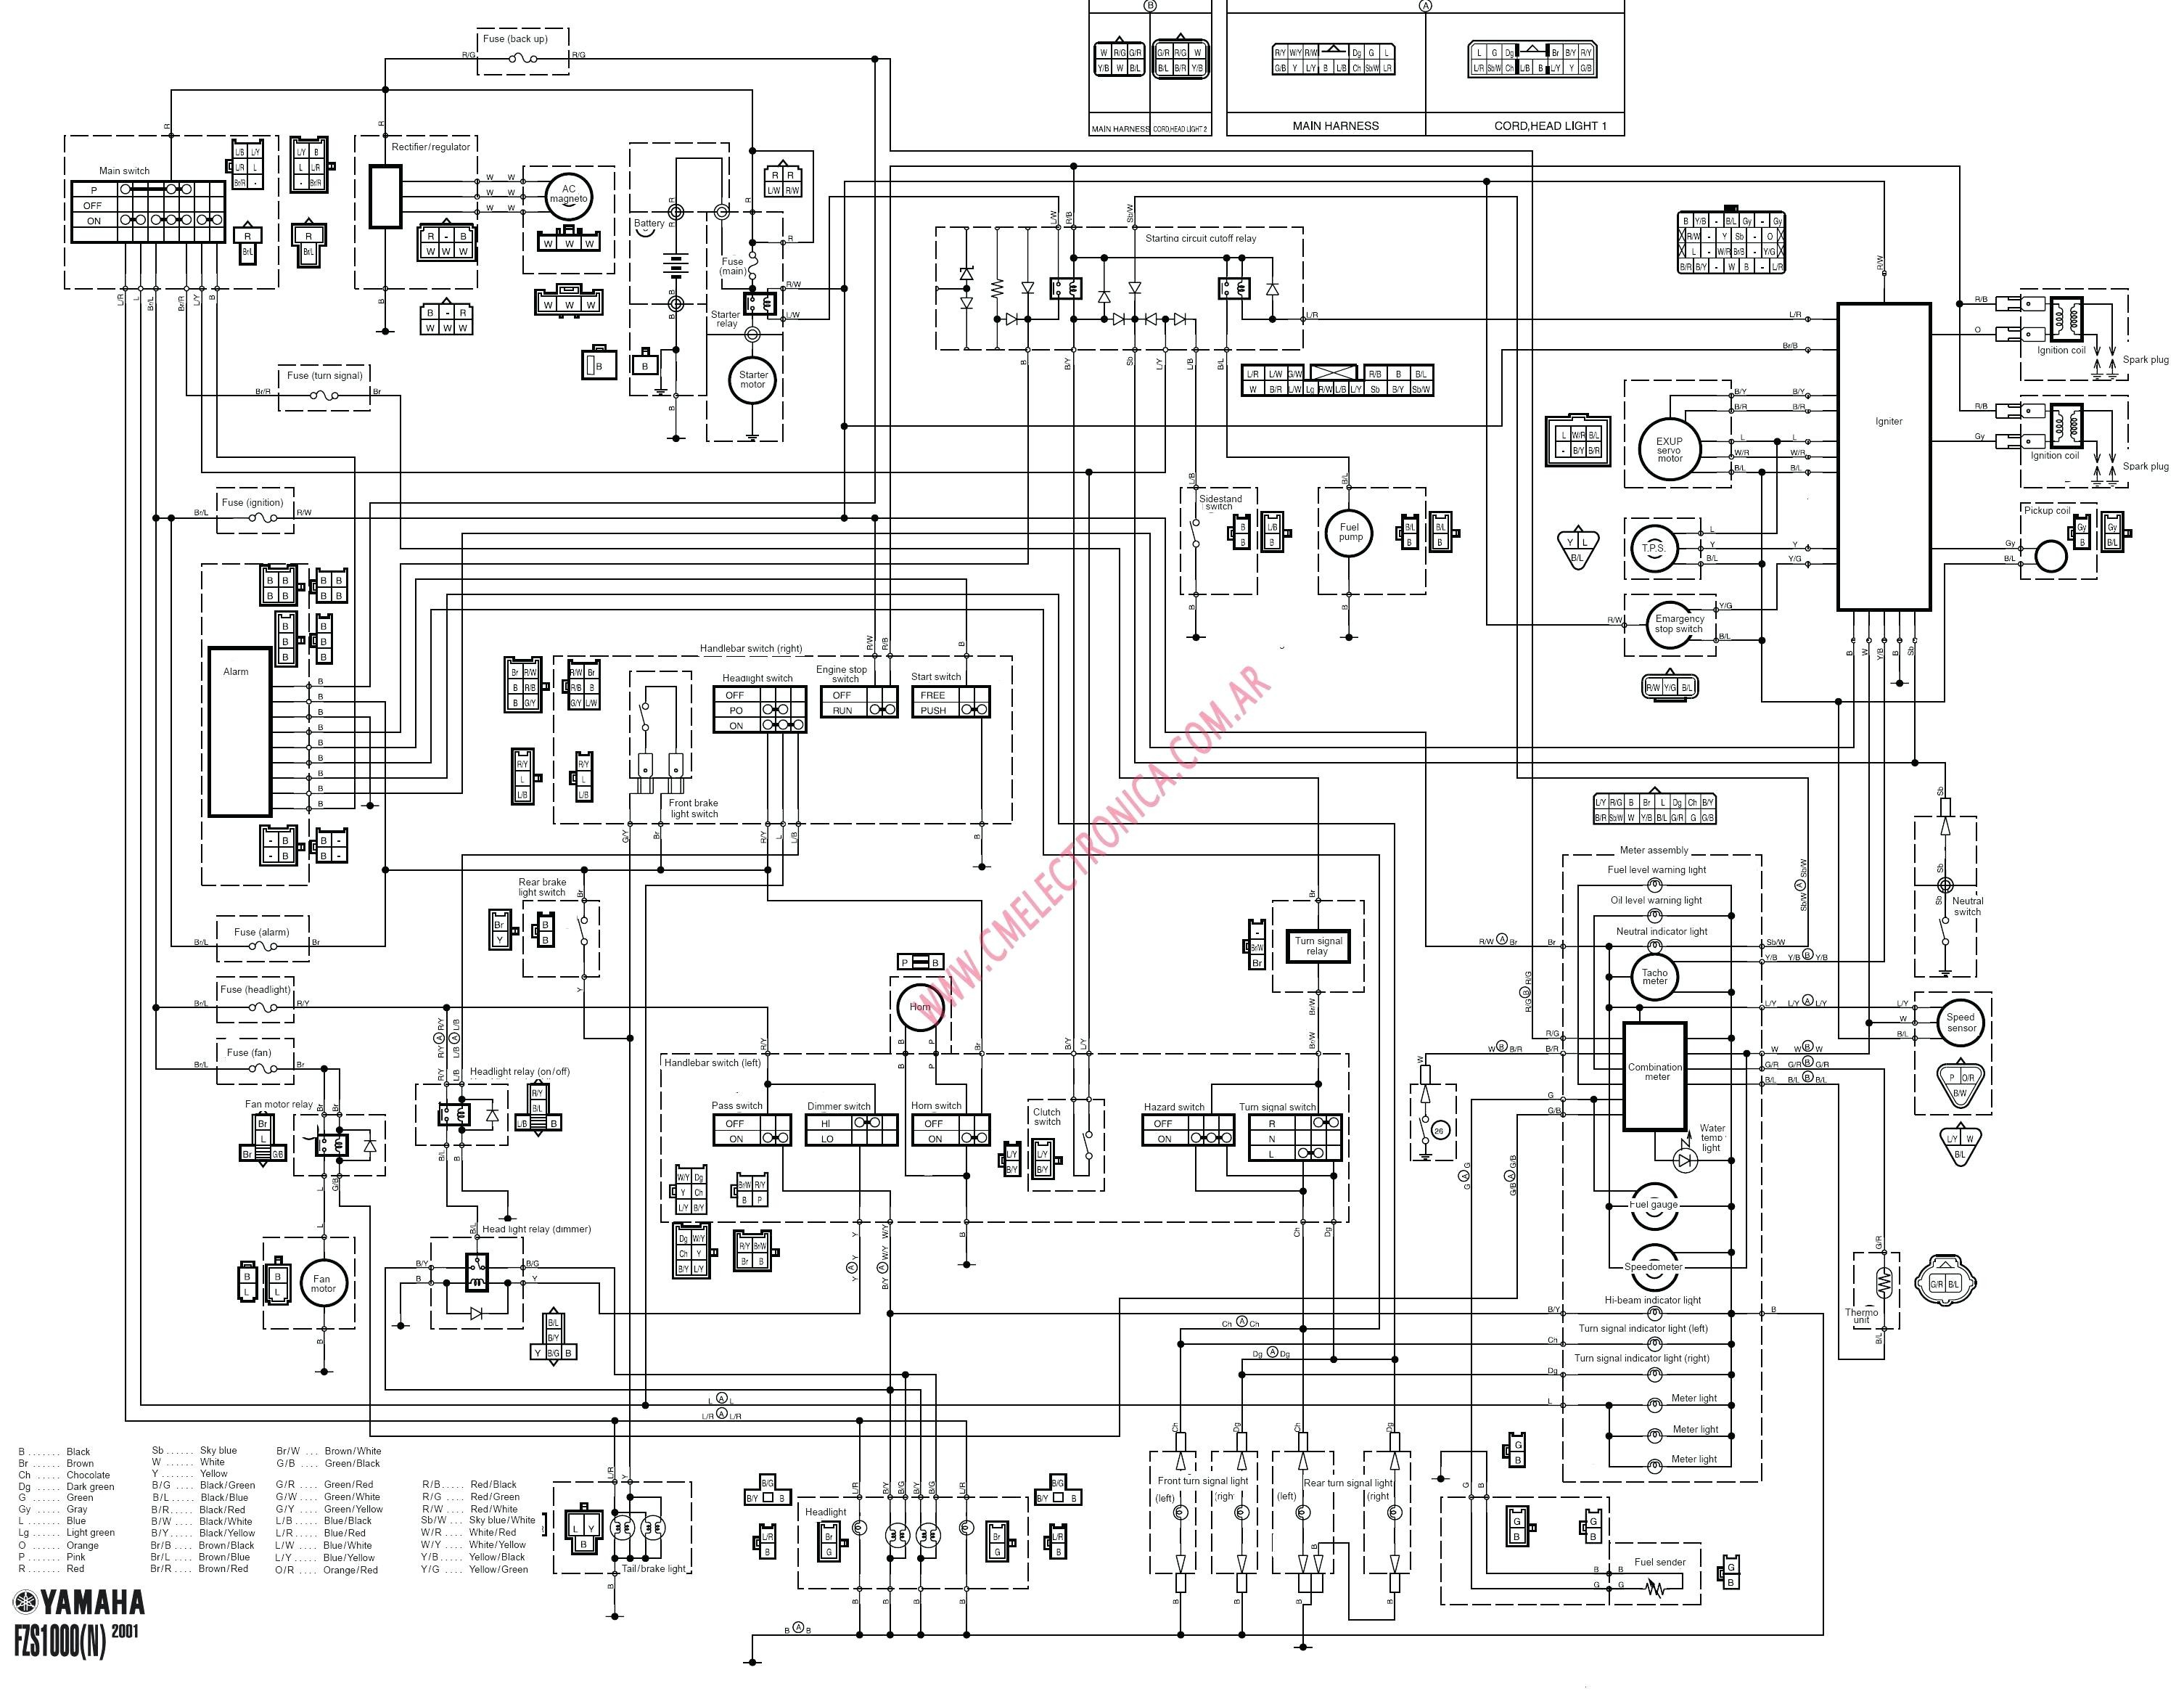 Full Size of 2002 Yamaha Kodiak 400 Wiring Diagram fortable Grizzly Ideas  Electrical Fantastic Templates